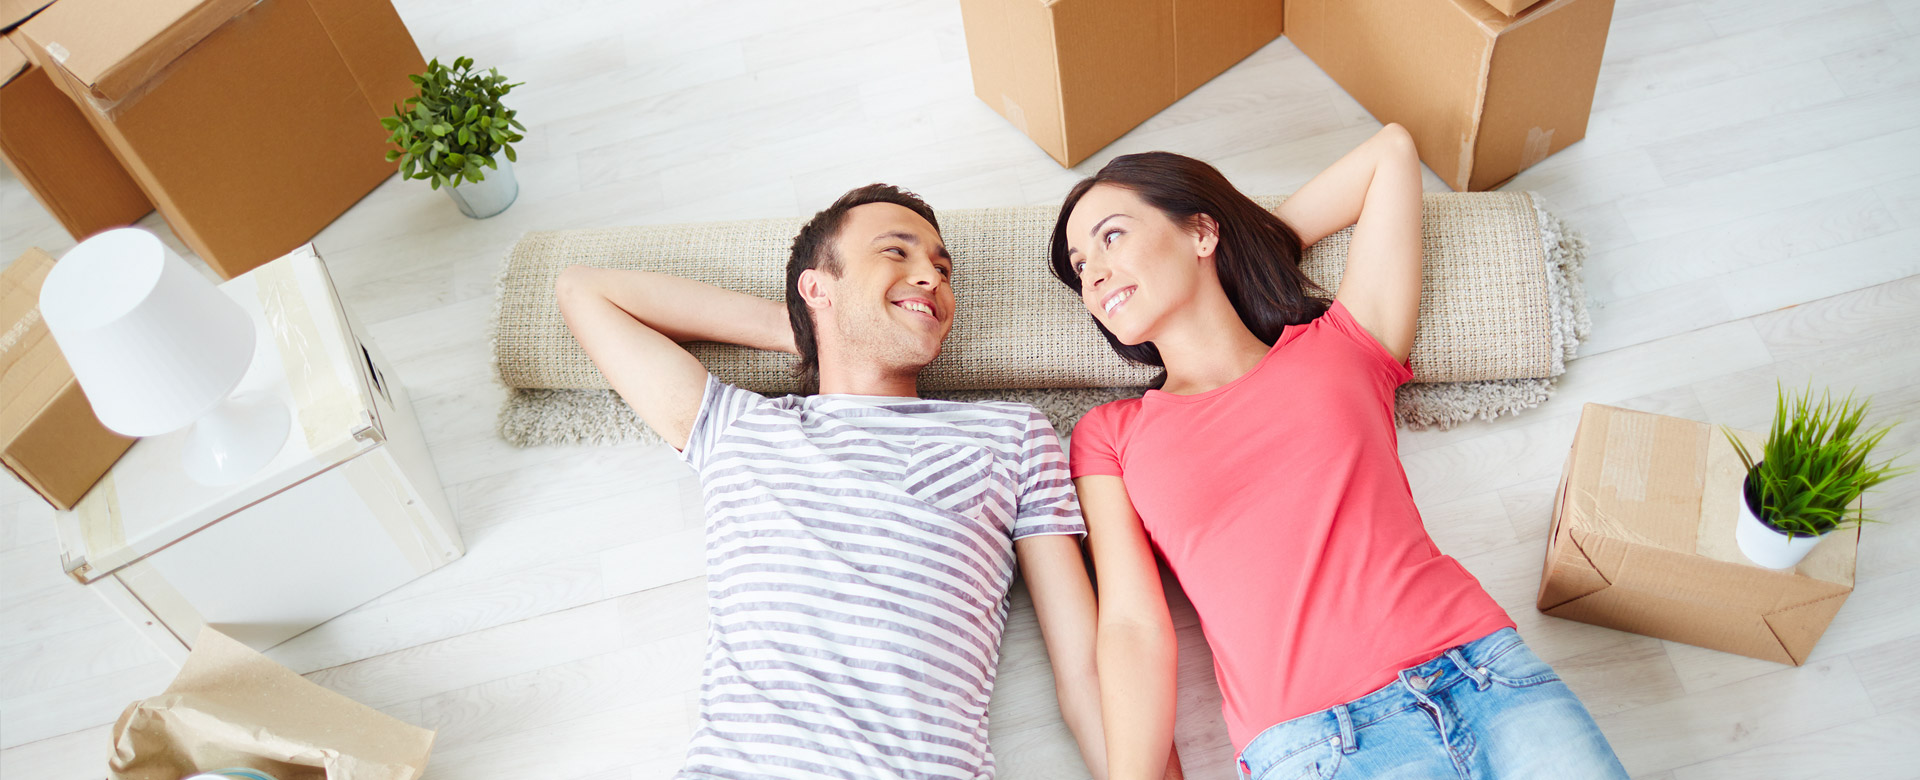 Professional couple moving in to Realstar's apartment rentals